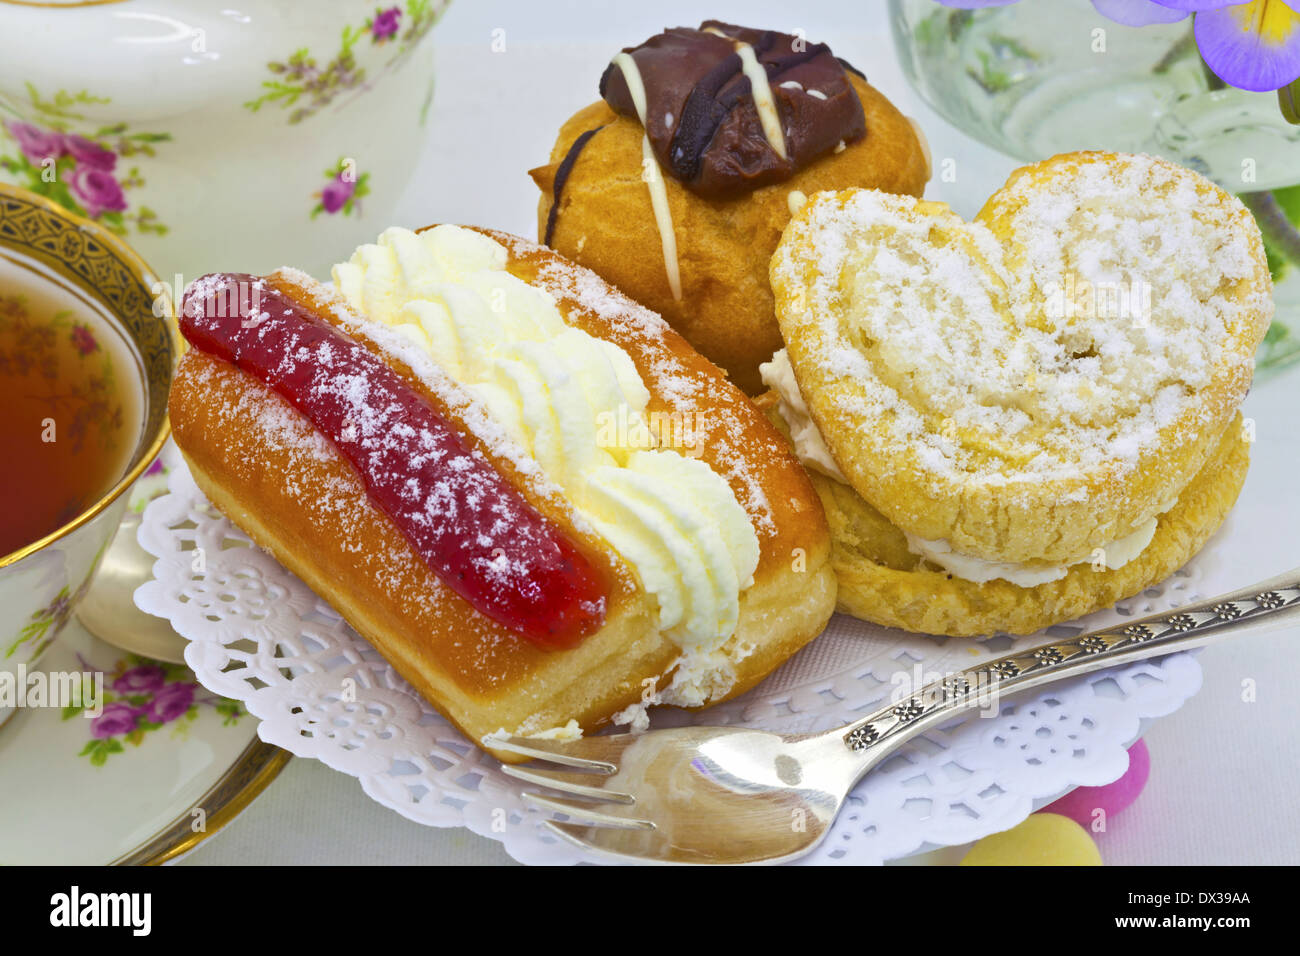 Traditional afternoon tea with cream cakes and vintage tea set. - Stock Image